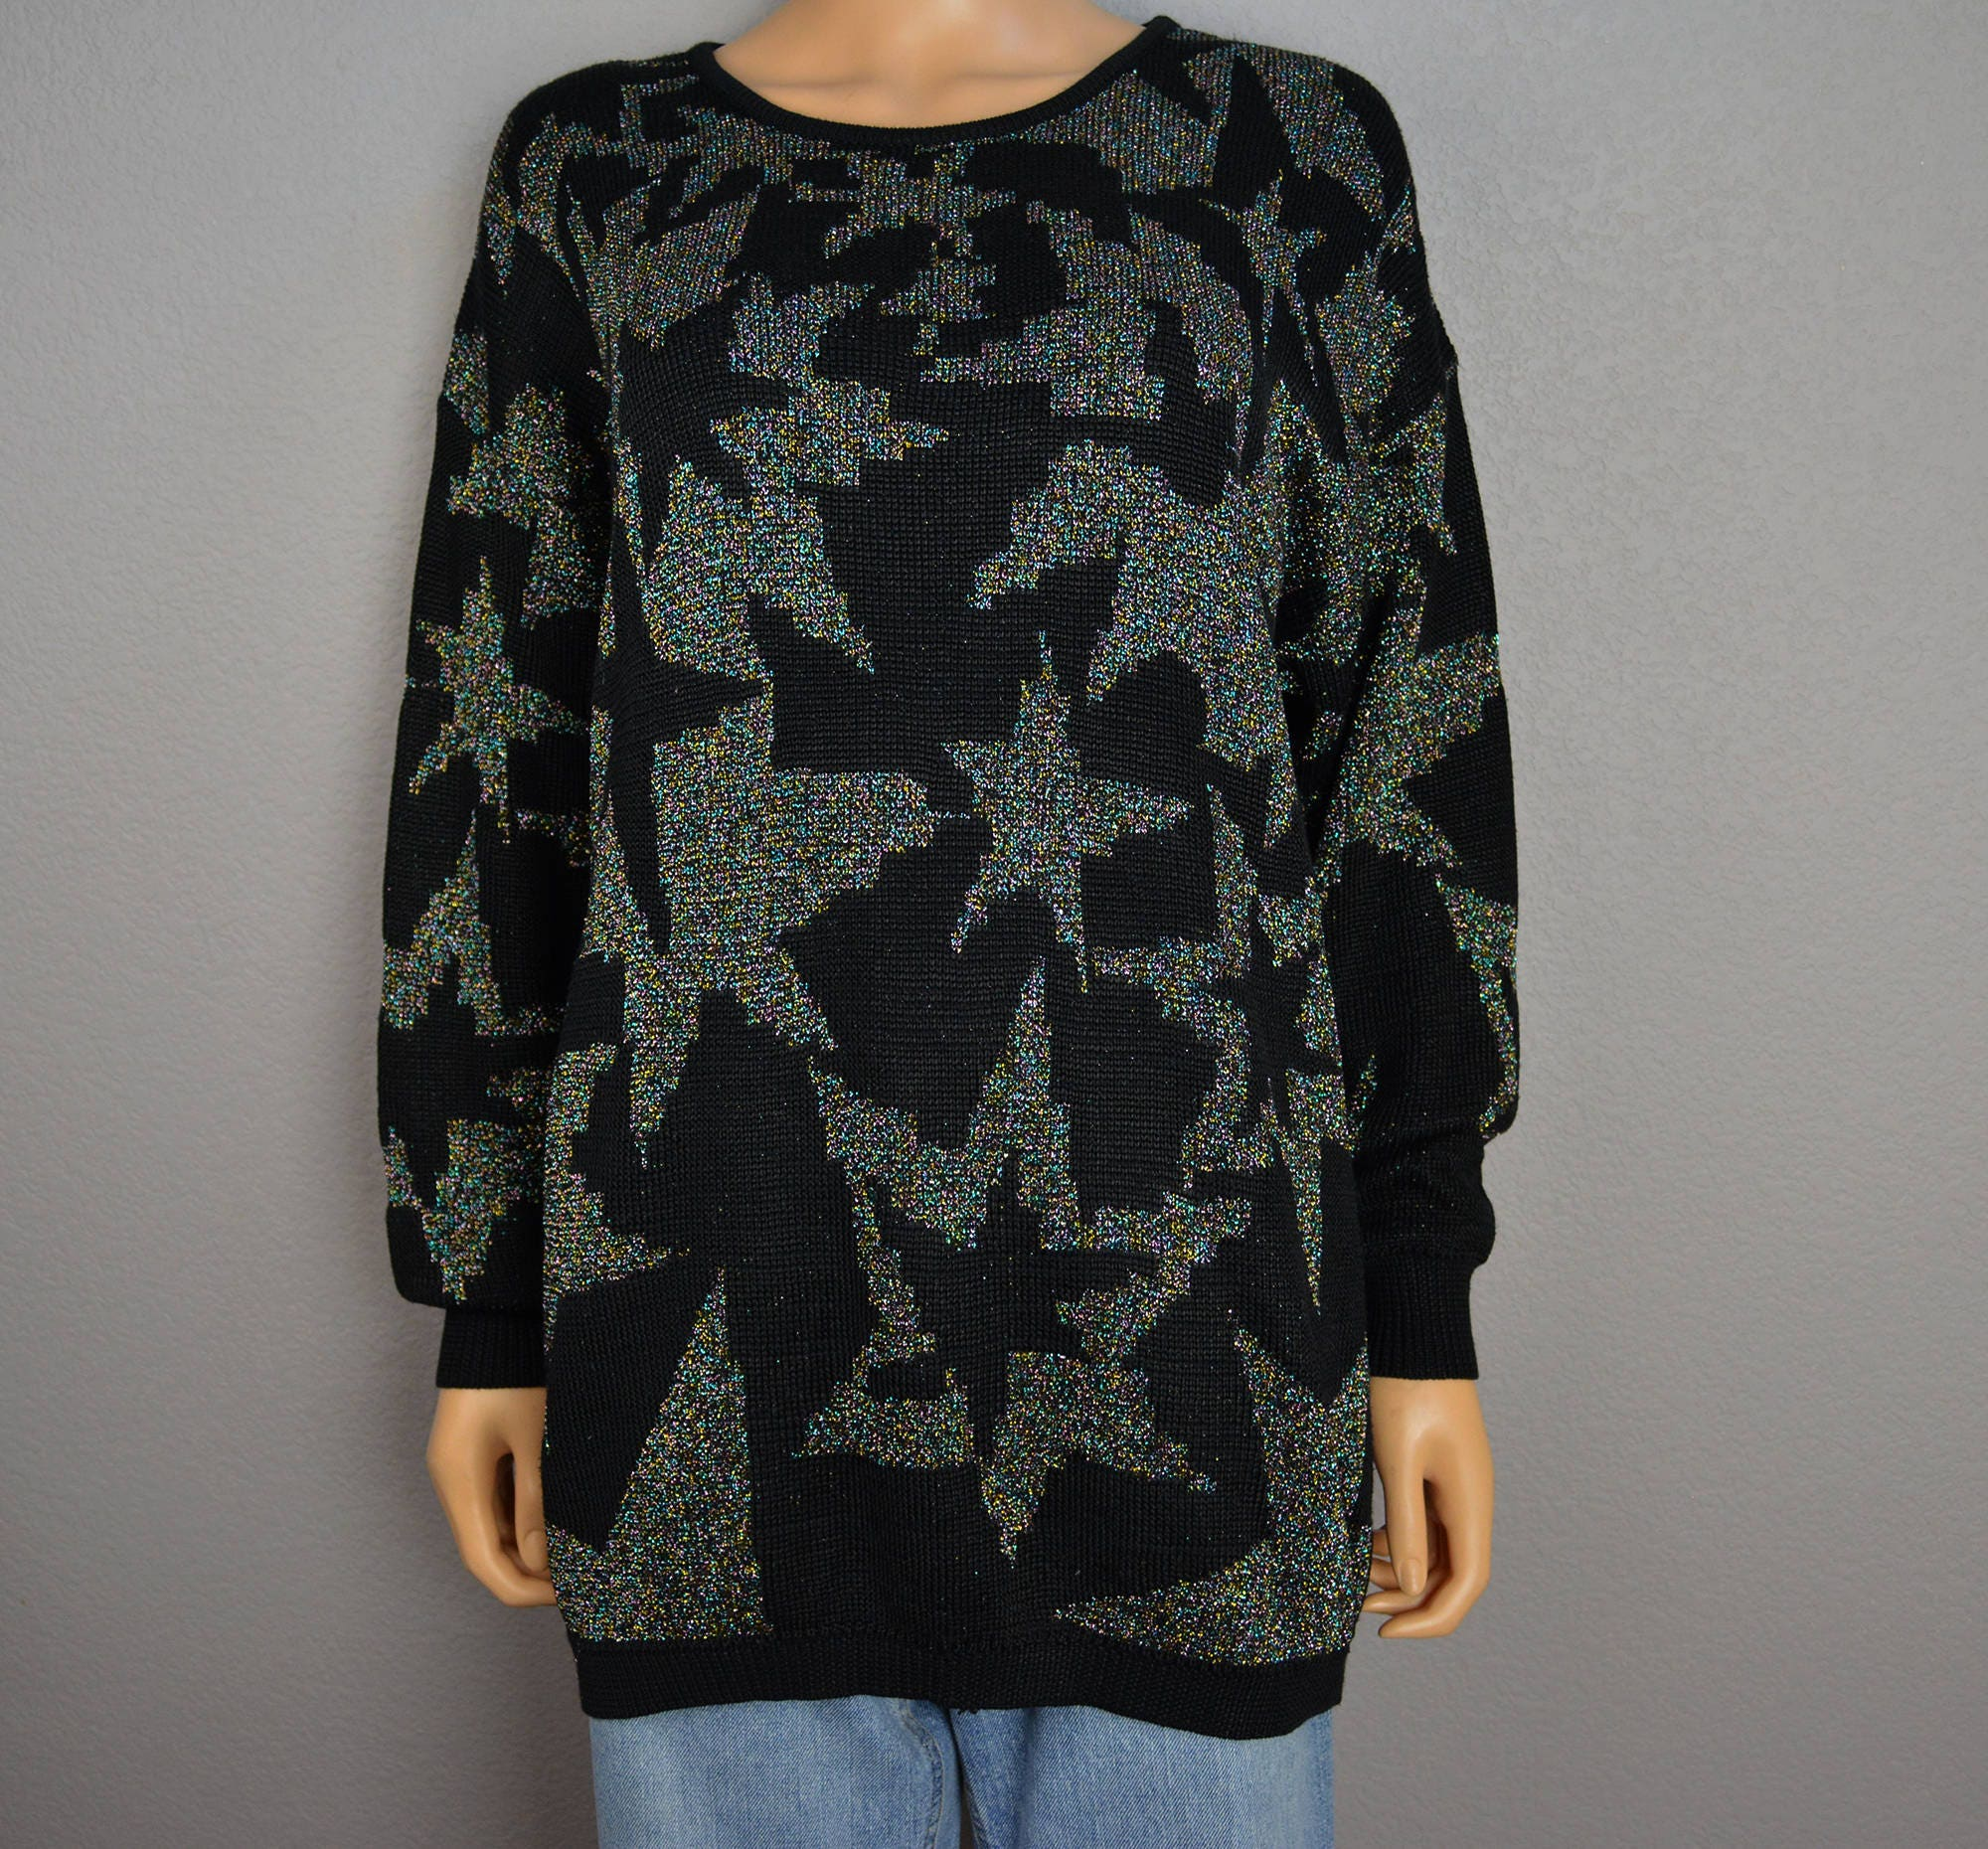 1be37856d81 80s Star Print Sweater Black With Multicolor Metallic Threads Size ...